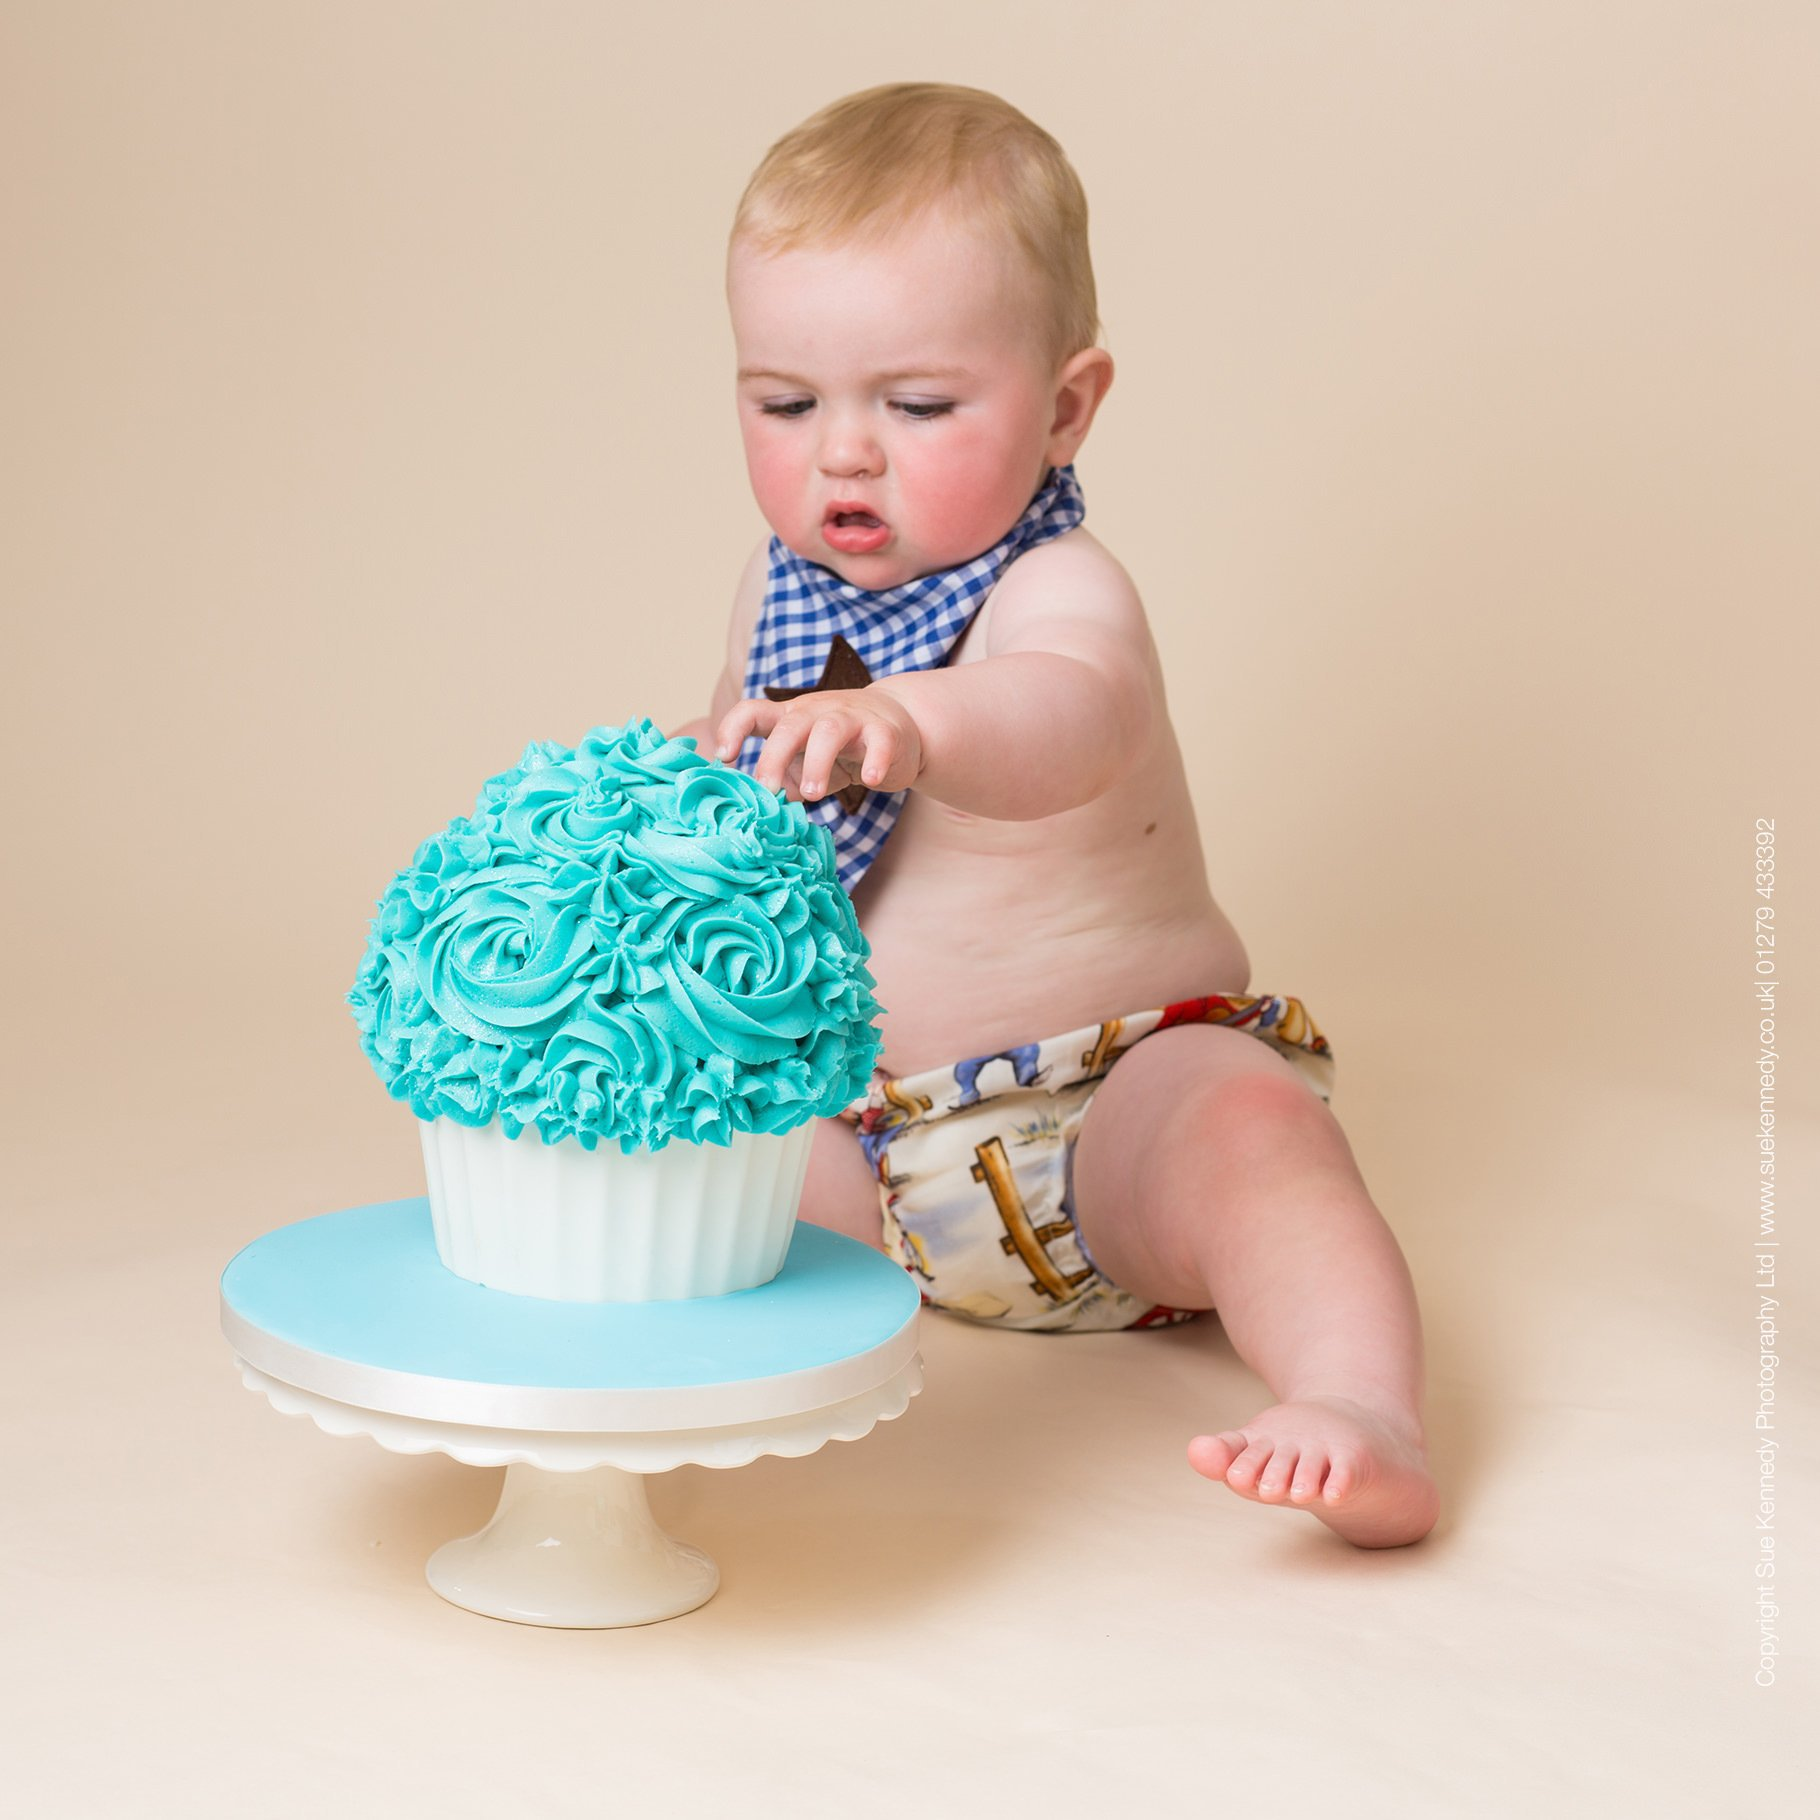 Cake Smash Photography by Sue Kennedy Photography ltd - 01279 433392